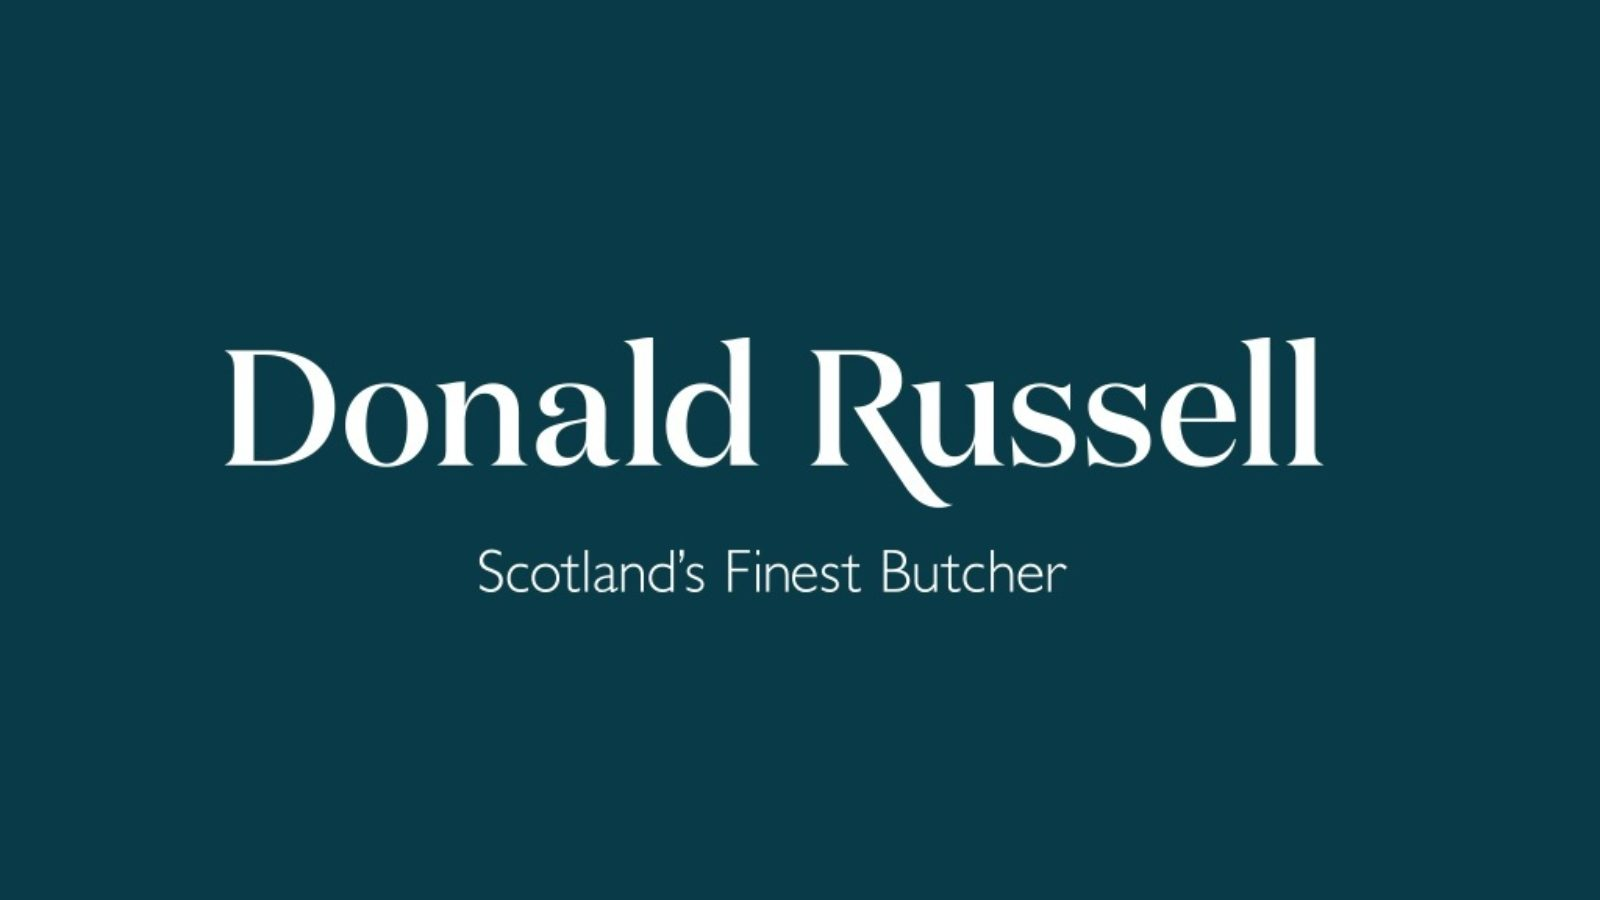 Royal Warrant-holding butcher Donald Russell appoints seasoned industry leader from Morrisons as new chief executive